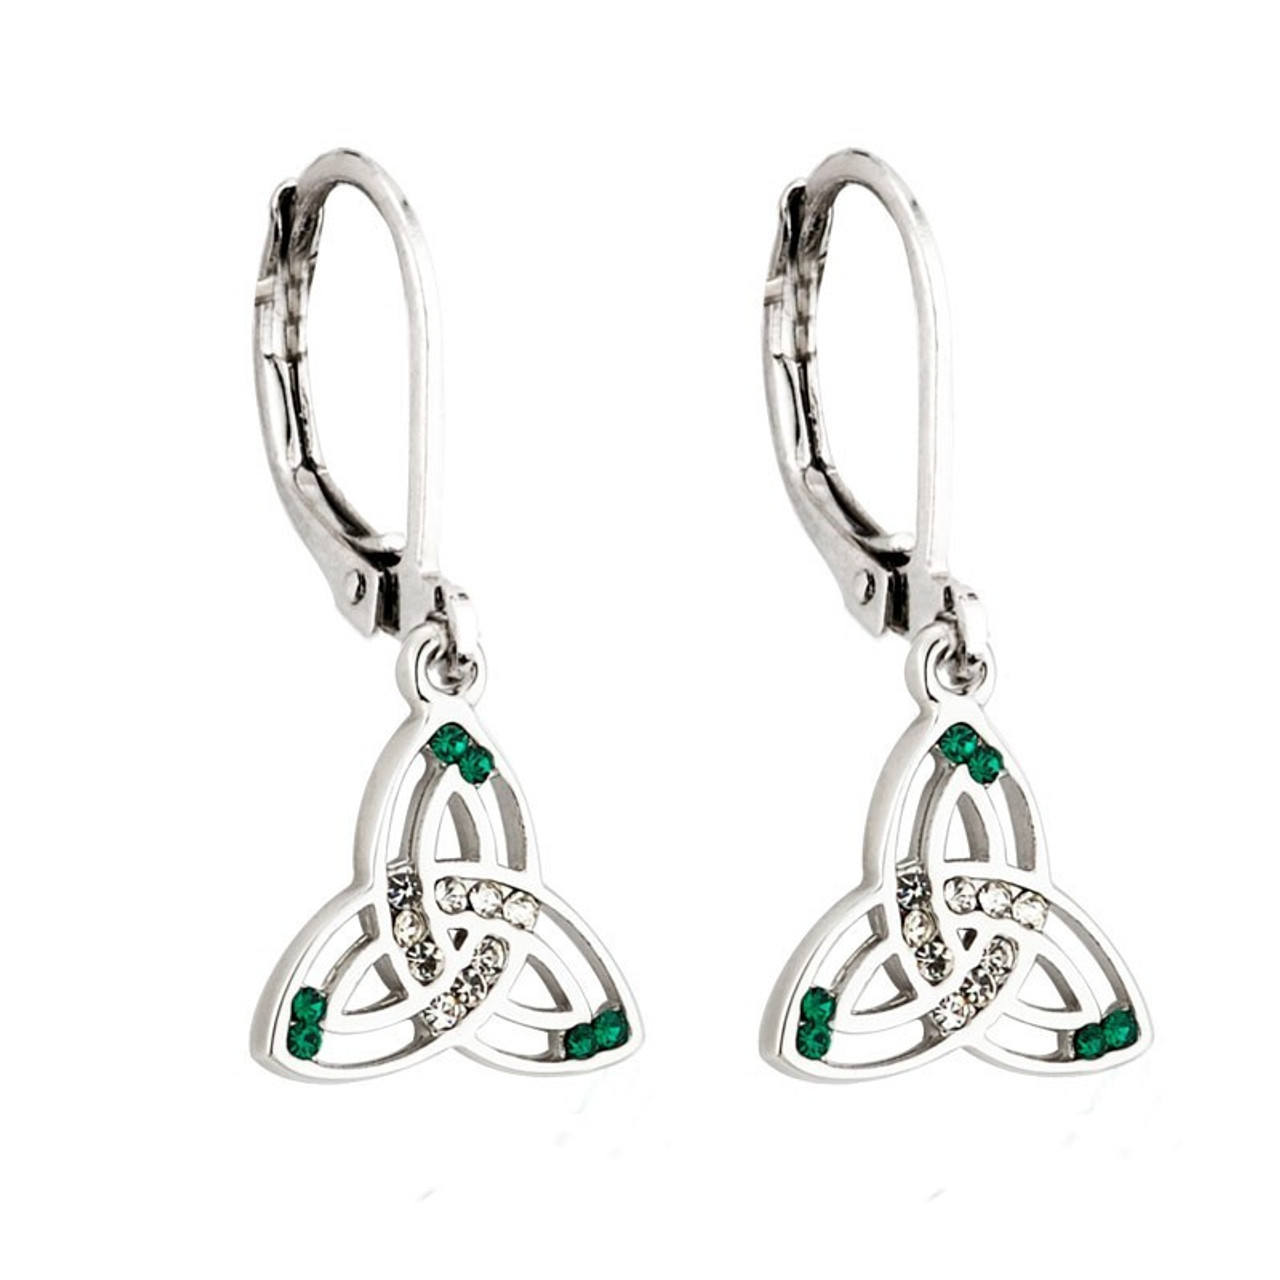 Trinity Knot Earrings with Green Stone